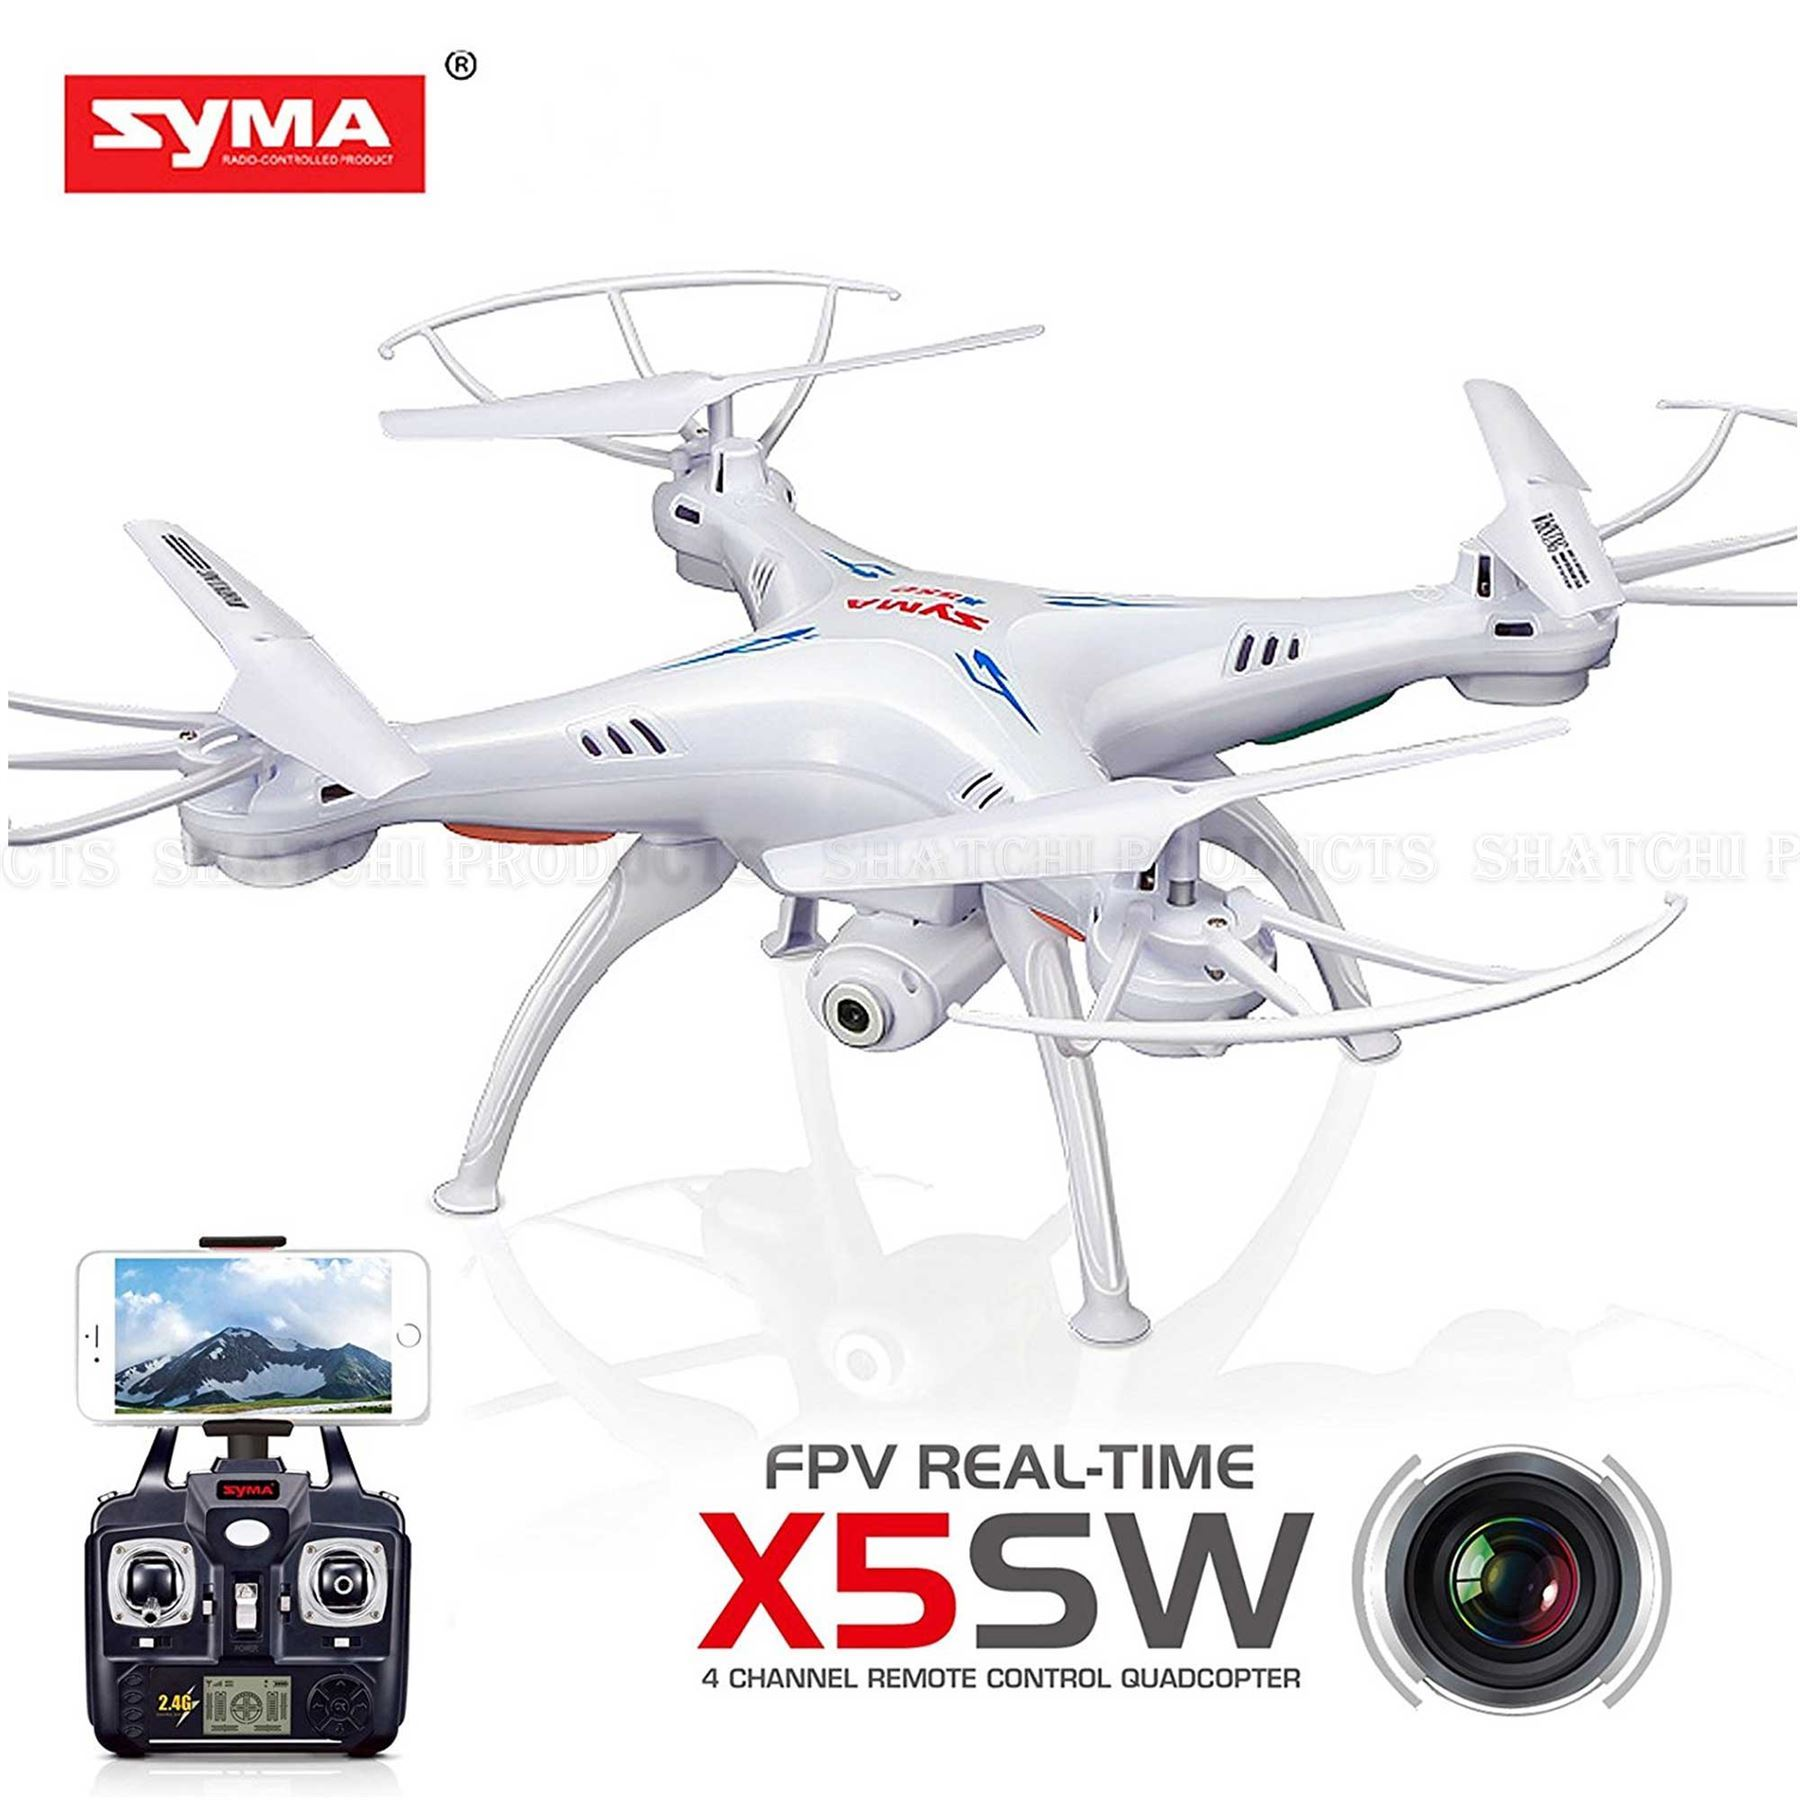 maplin drone with 391591618445 on Christmas Drone Sales Boom Sparks Privacy Concerns besides Christmas Drone Game Set Take Off Festive Season likewise Theinter video pany together with Atom 1 0 Micro Drone further Best New Drones  ing In 2015 2016 3625296.